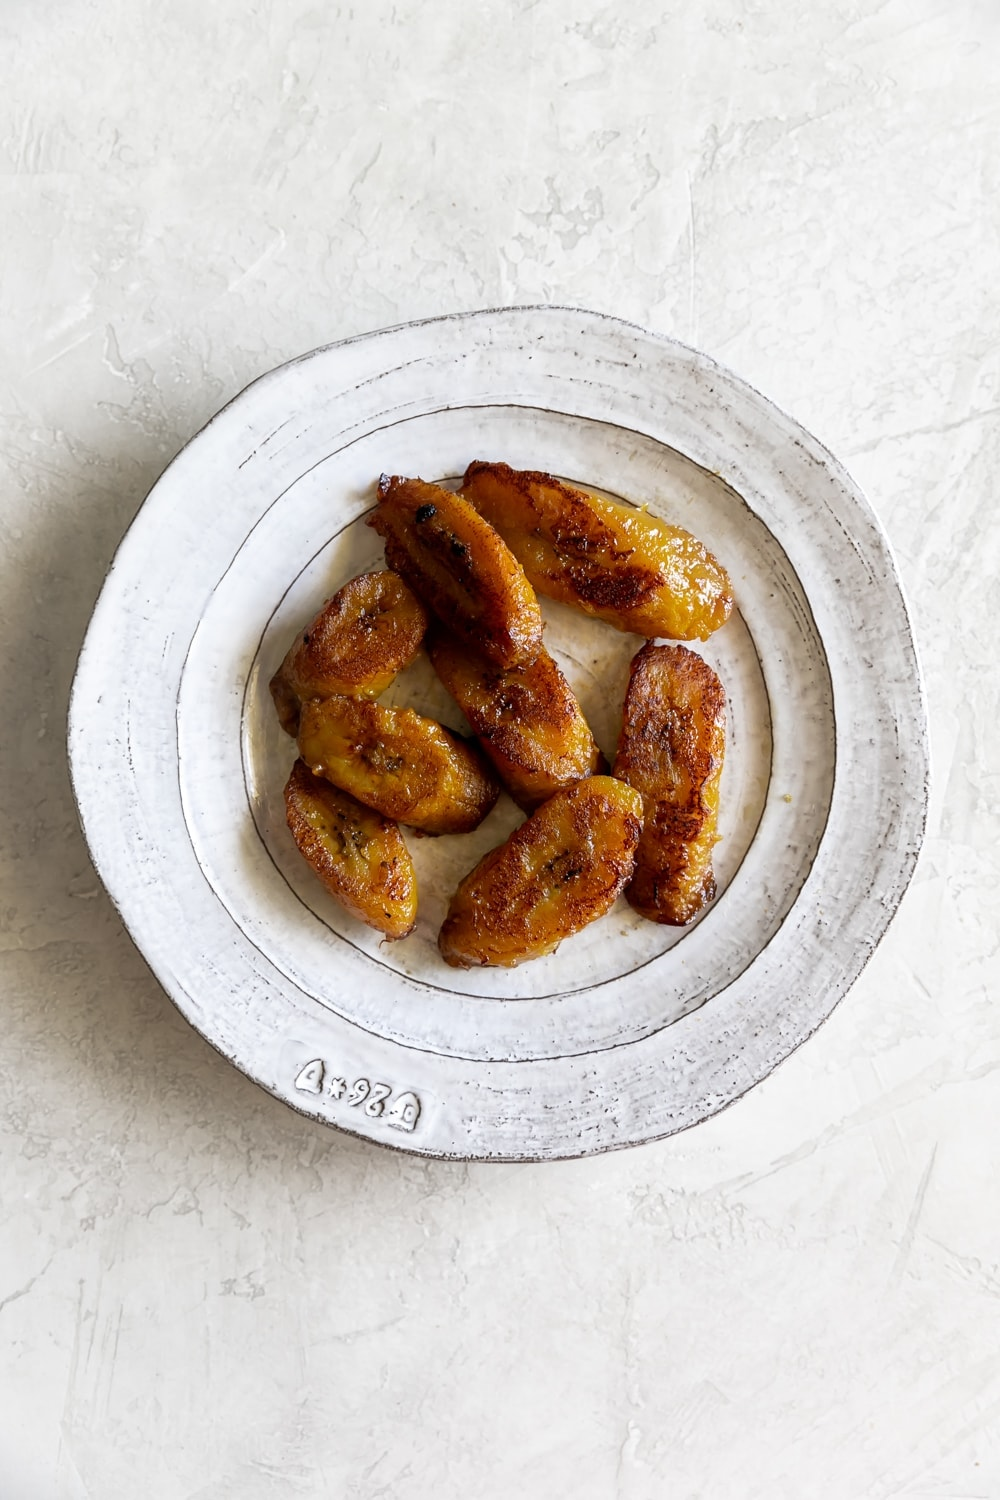 top view of cooked sweet plantains (maduros)